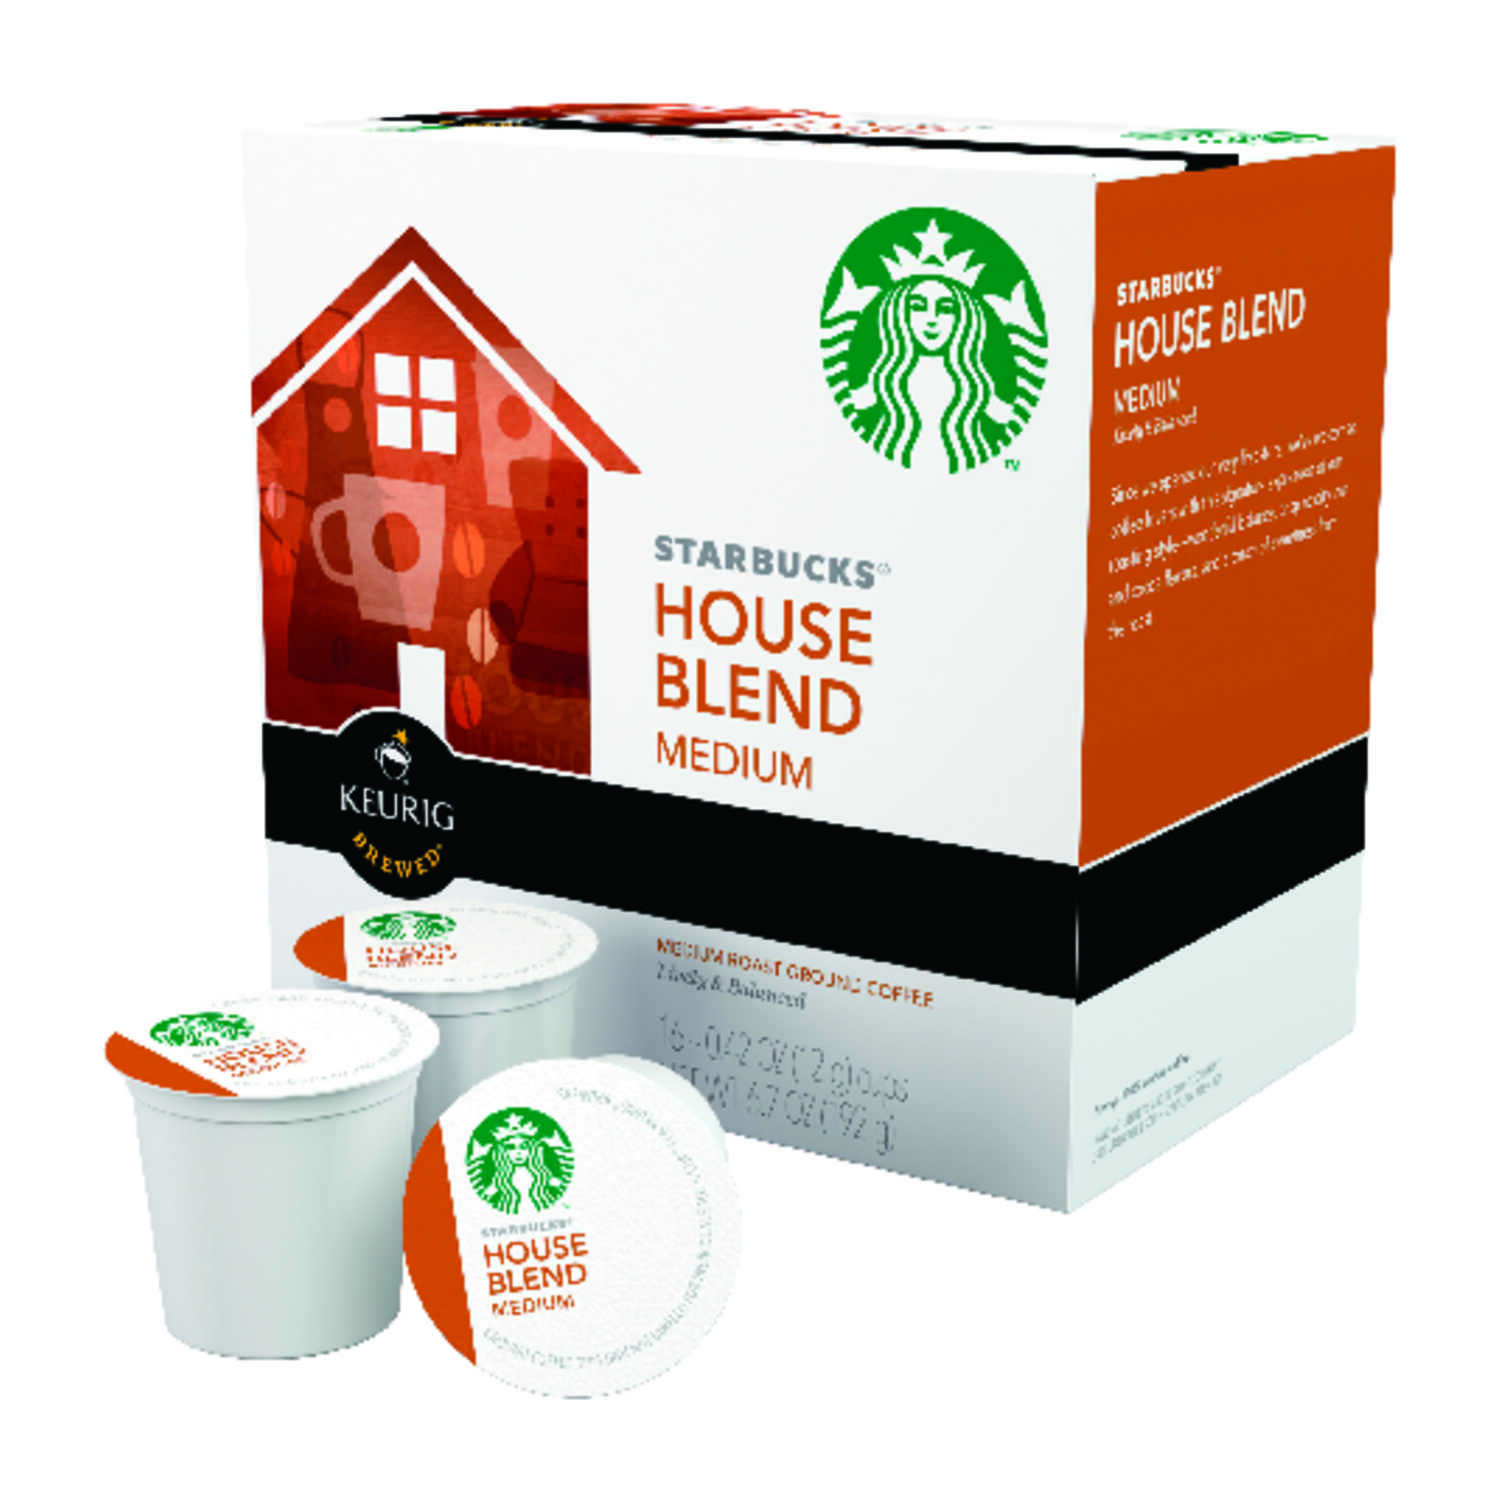 Keurig  Starbucks  House Blend Medium  Coffee K-Cups  16 pk